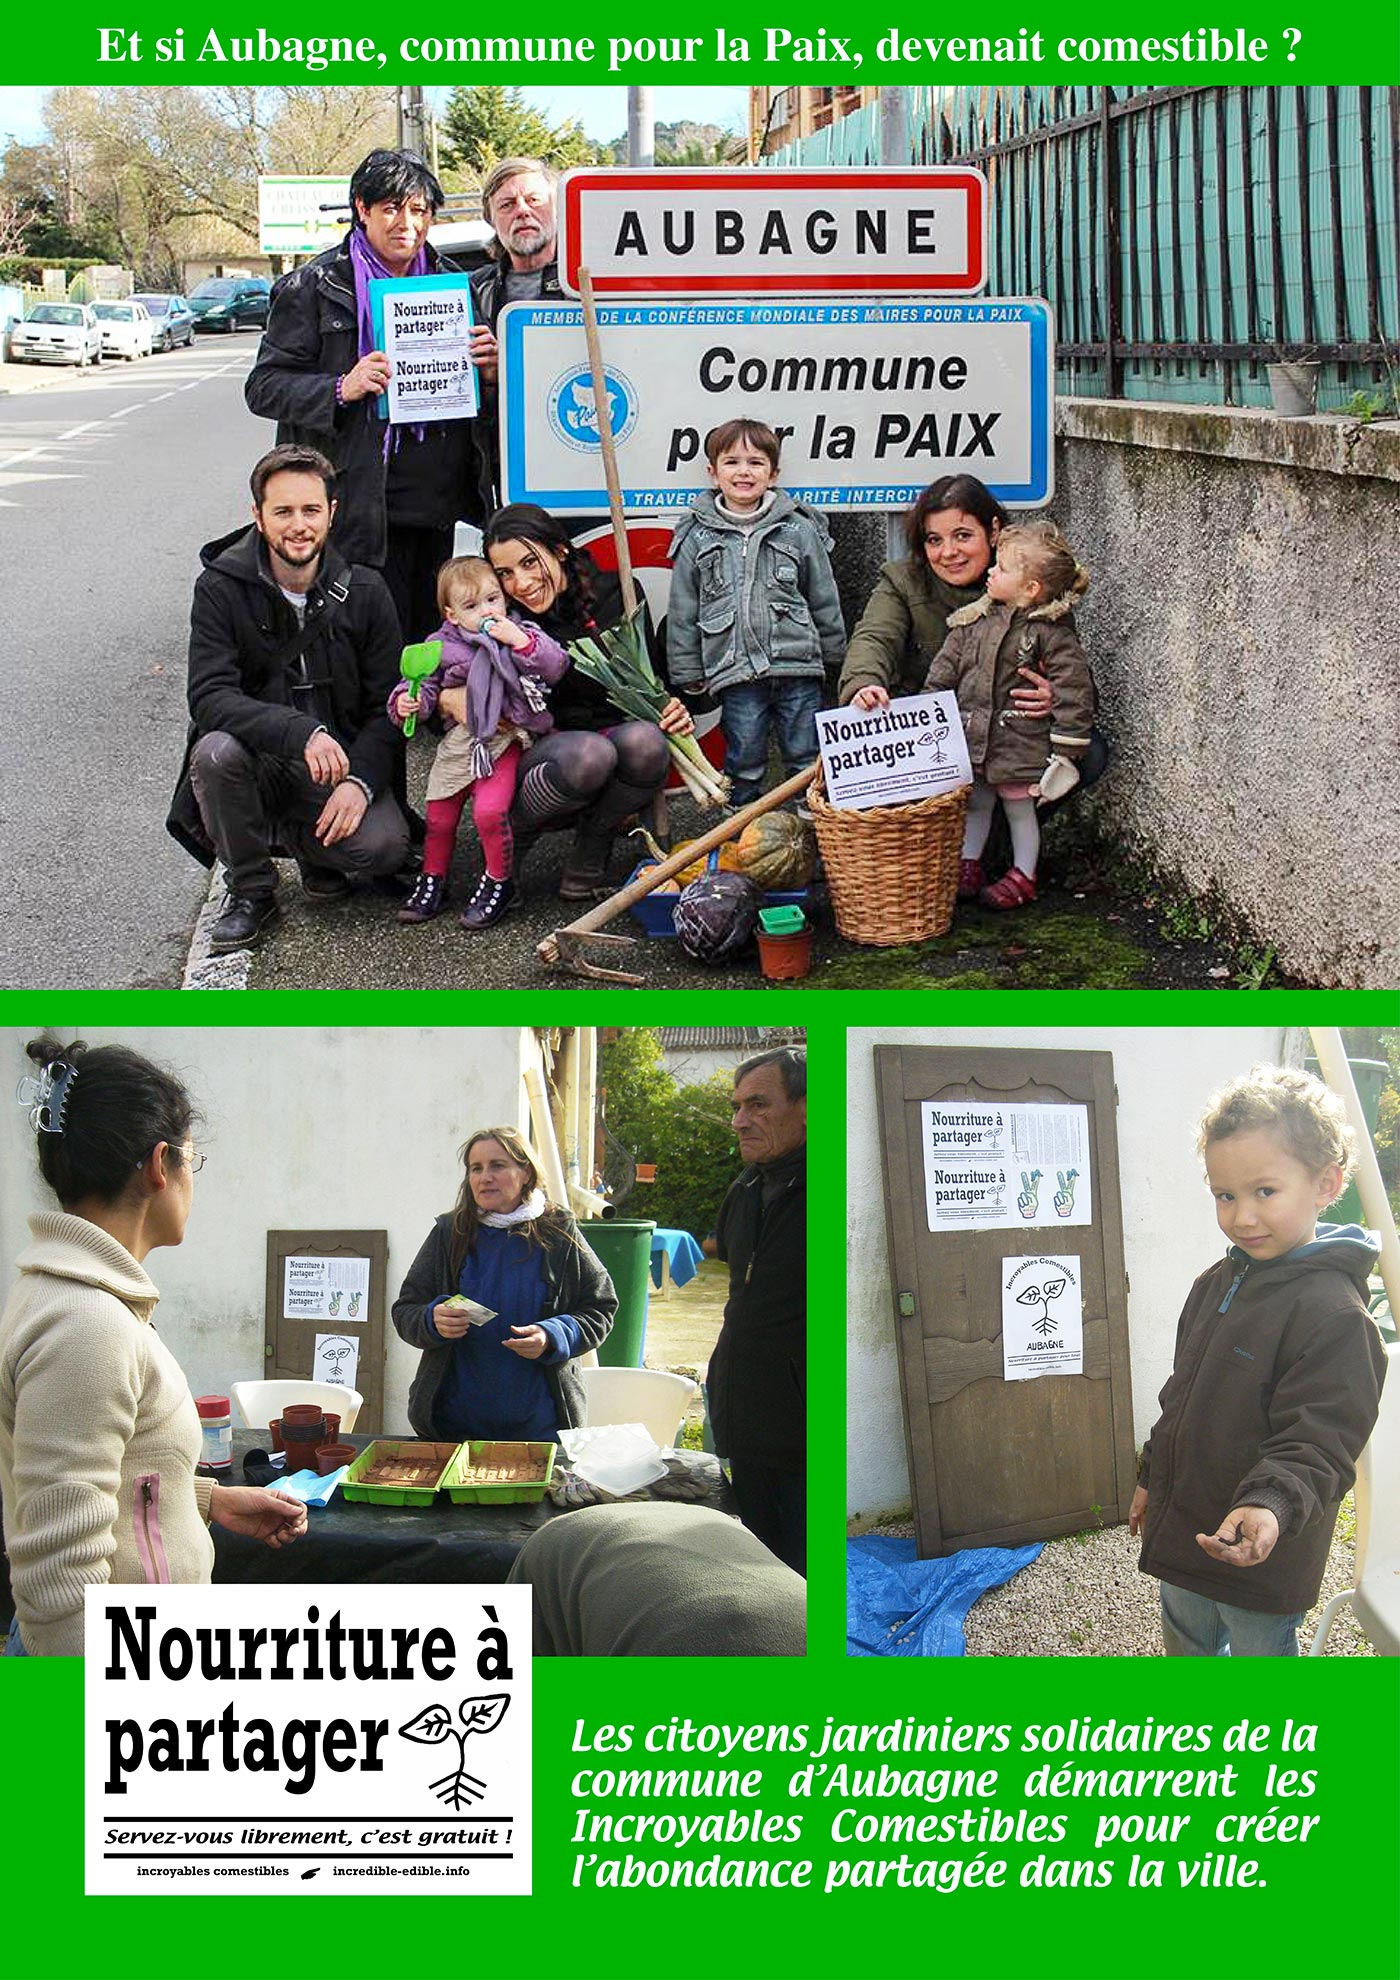 c677_incredible_edible_todmorden_france_aubagne_agriculture_urbaine_incroyables_comestibles_w1400